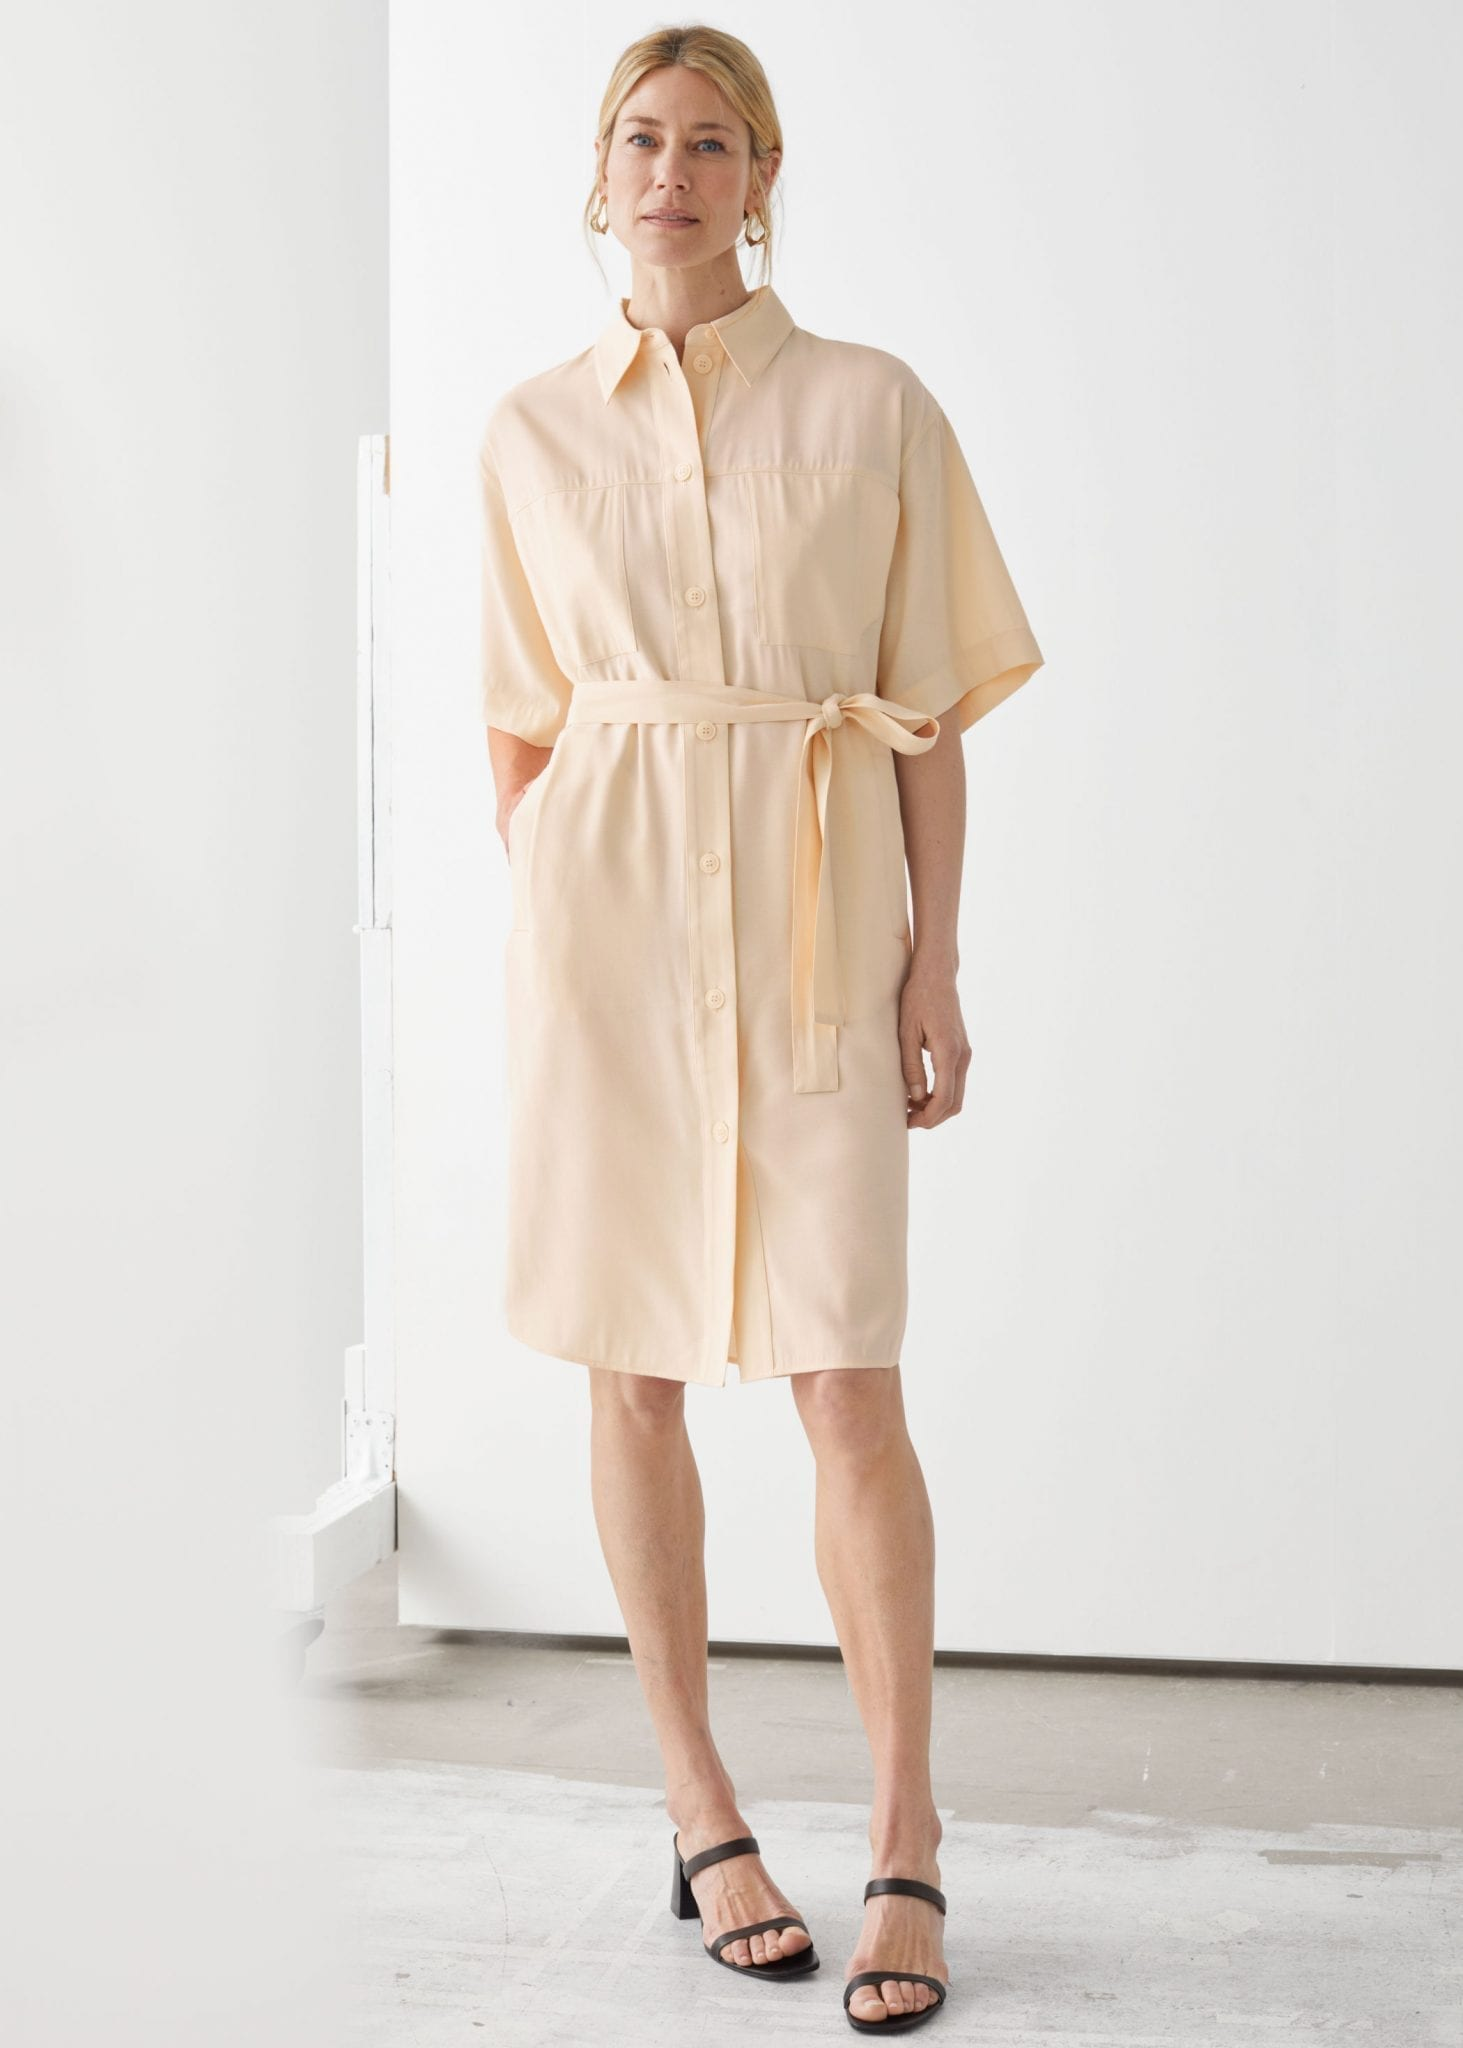 AND OTHER STORIES Oversized Midi Shirt Dress